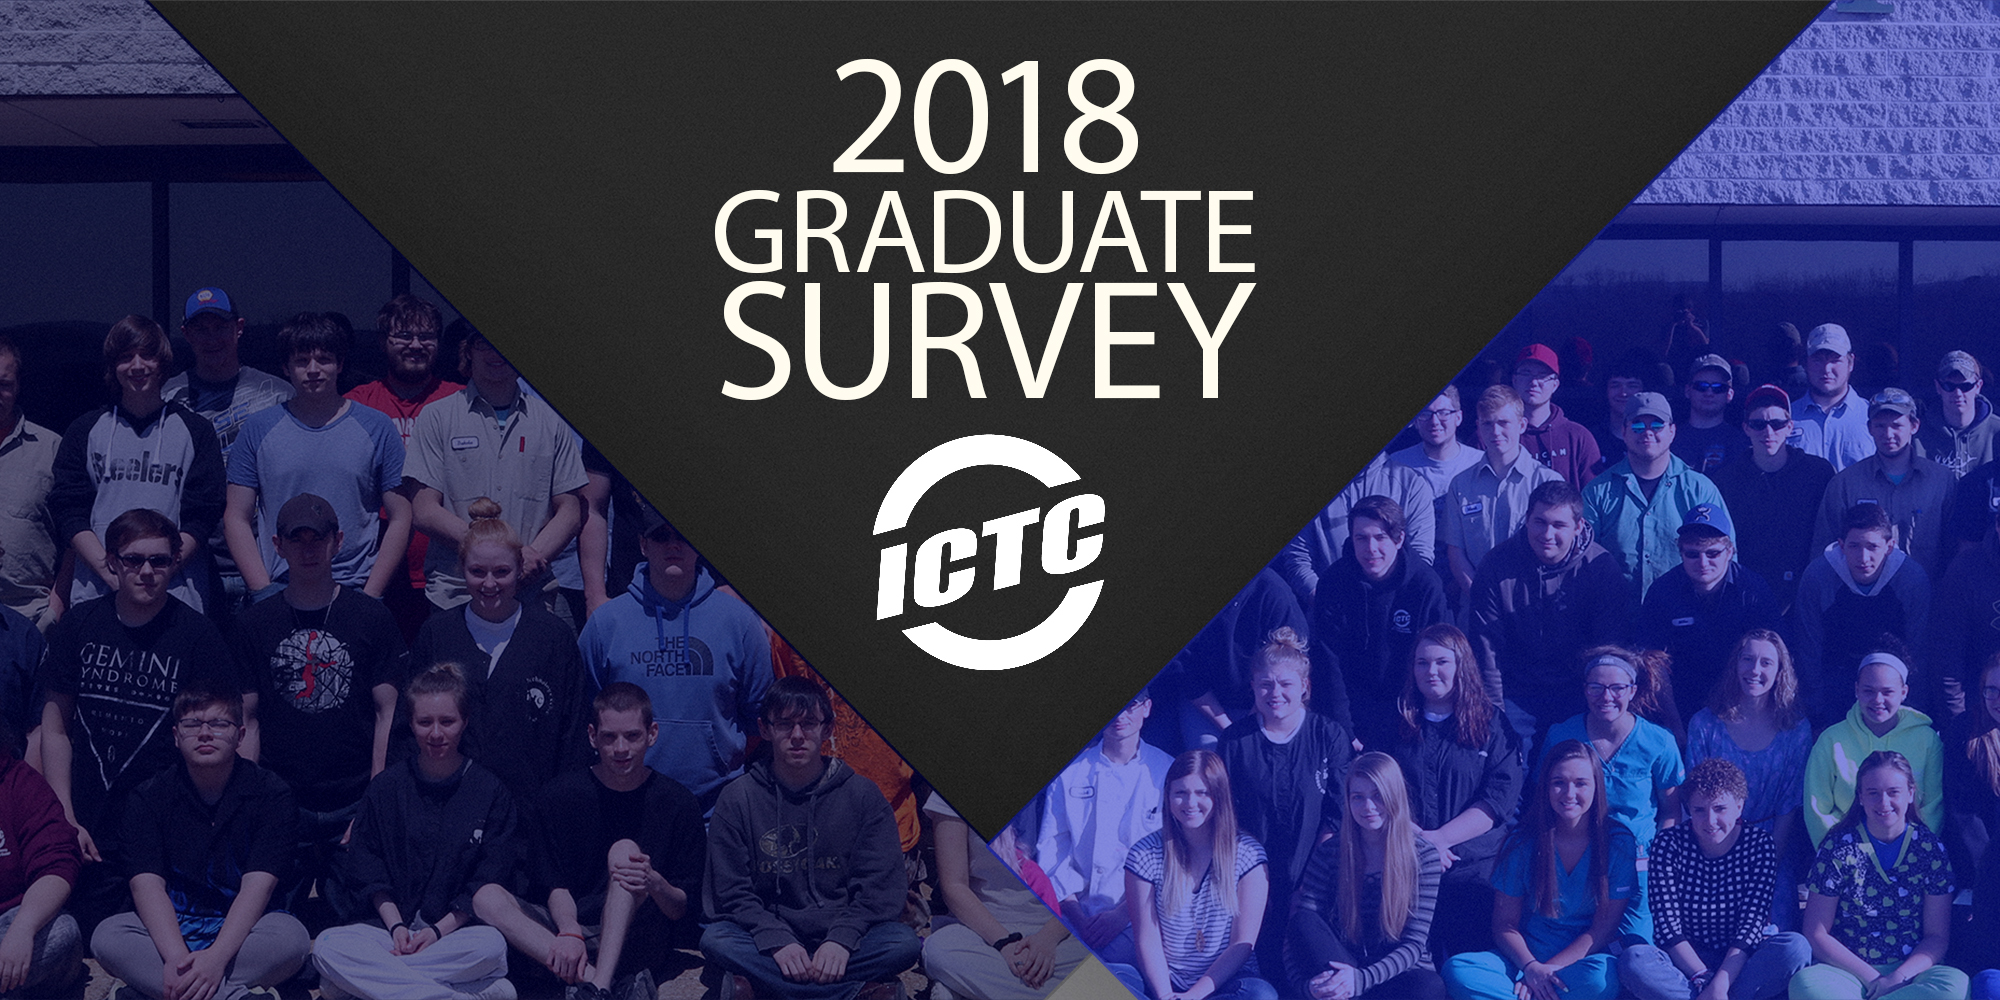 Attention ICTC 2018 Graduates!